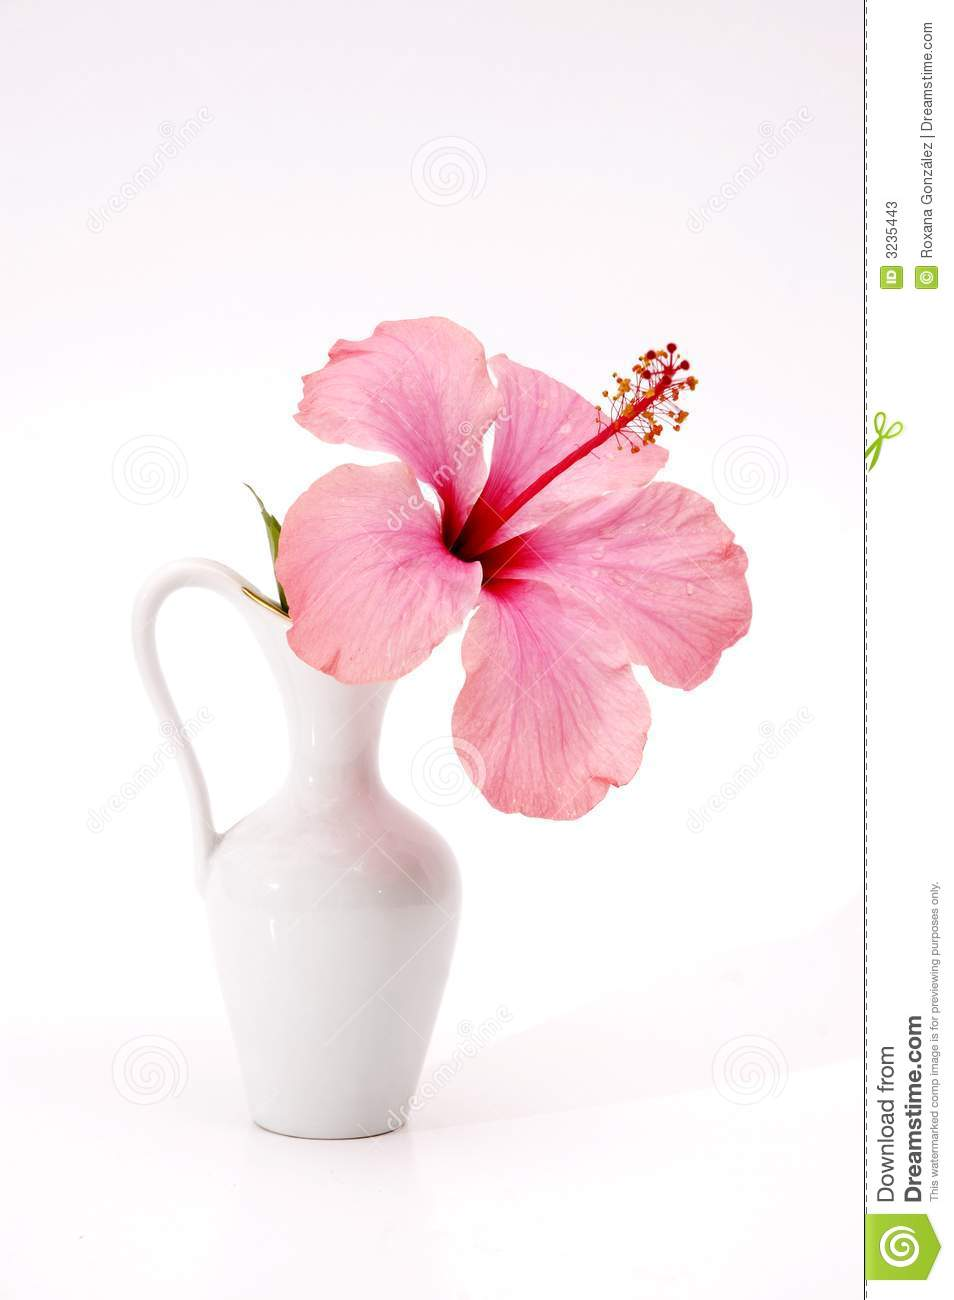 Stock Photos Tropical Flower Vase Image3235443 on living room themes